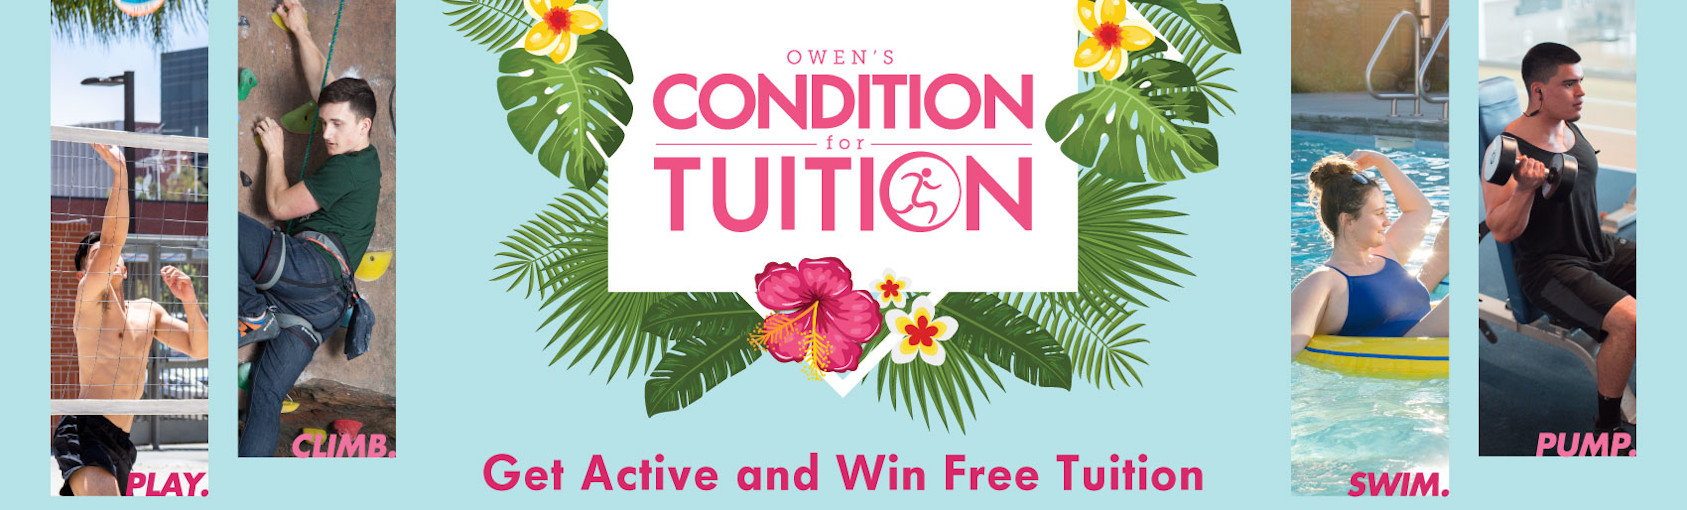 Get Active and Win Free Tuition Banner